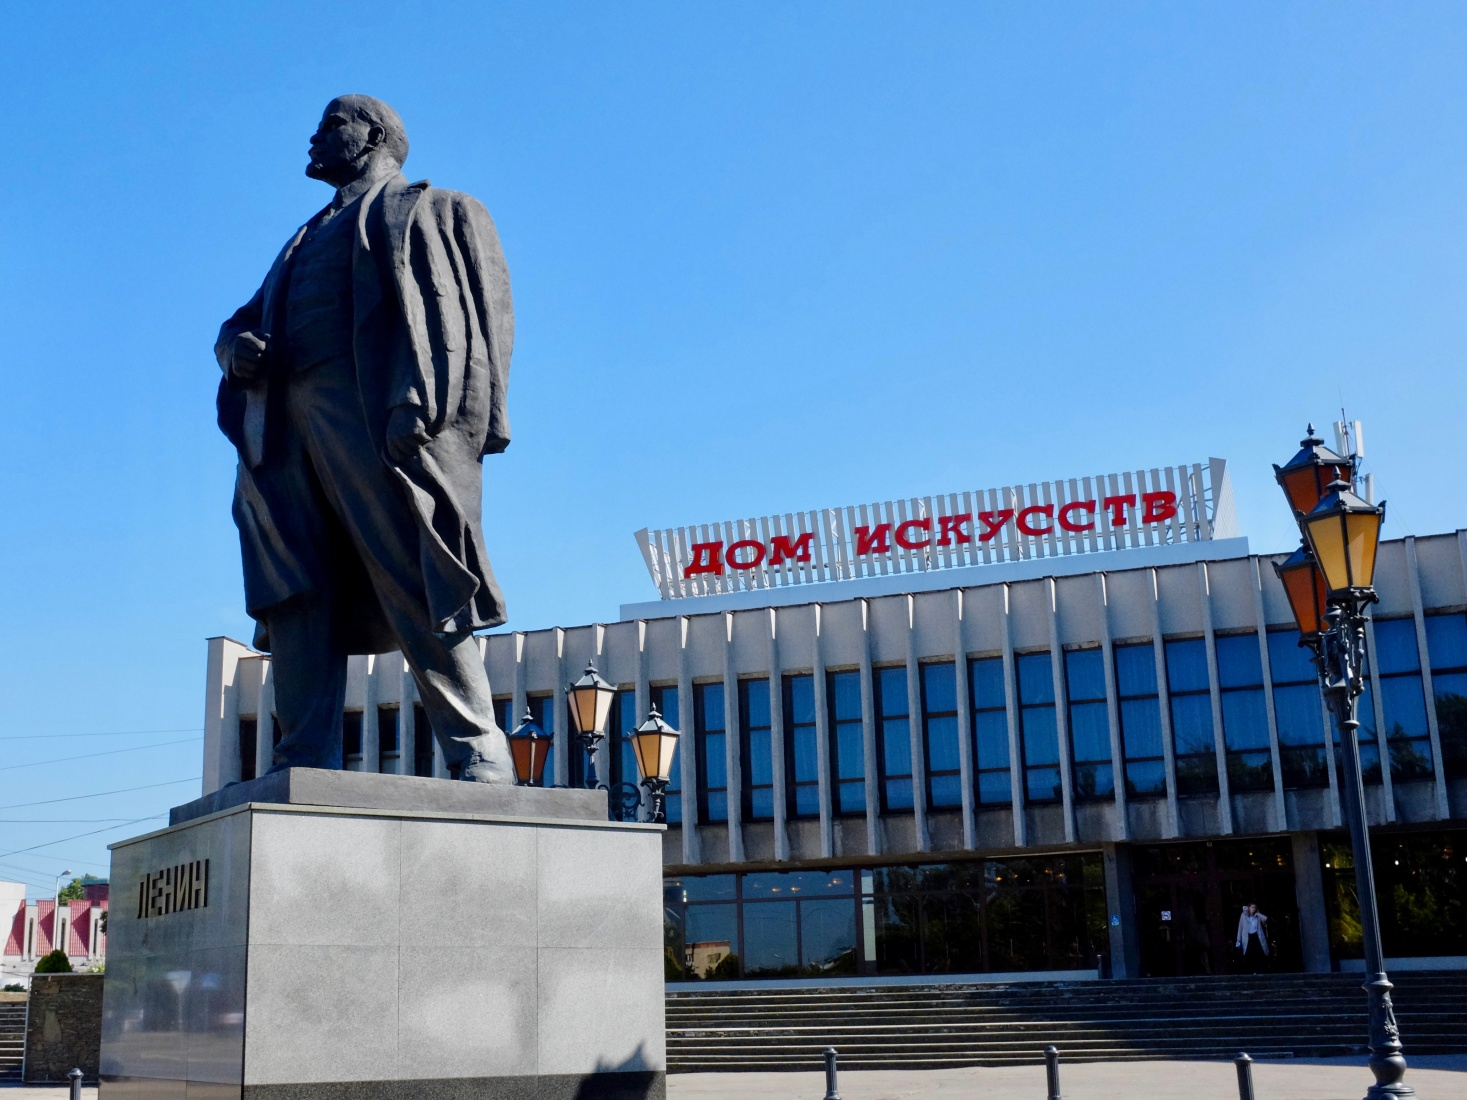 Statue of Lenin in the south of Kaliningrad, Russia, city center, near the bus station and train station.